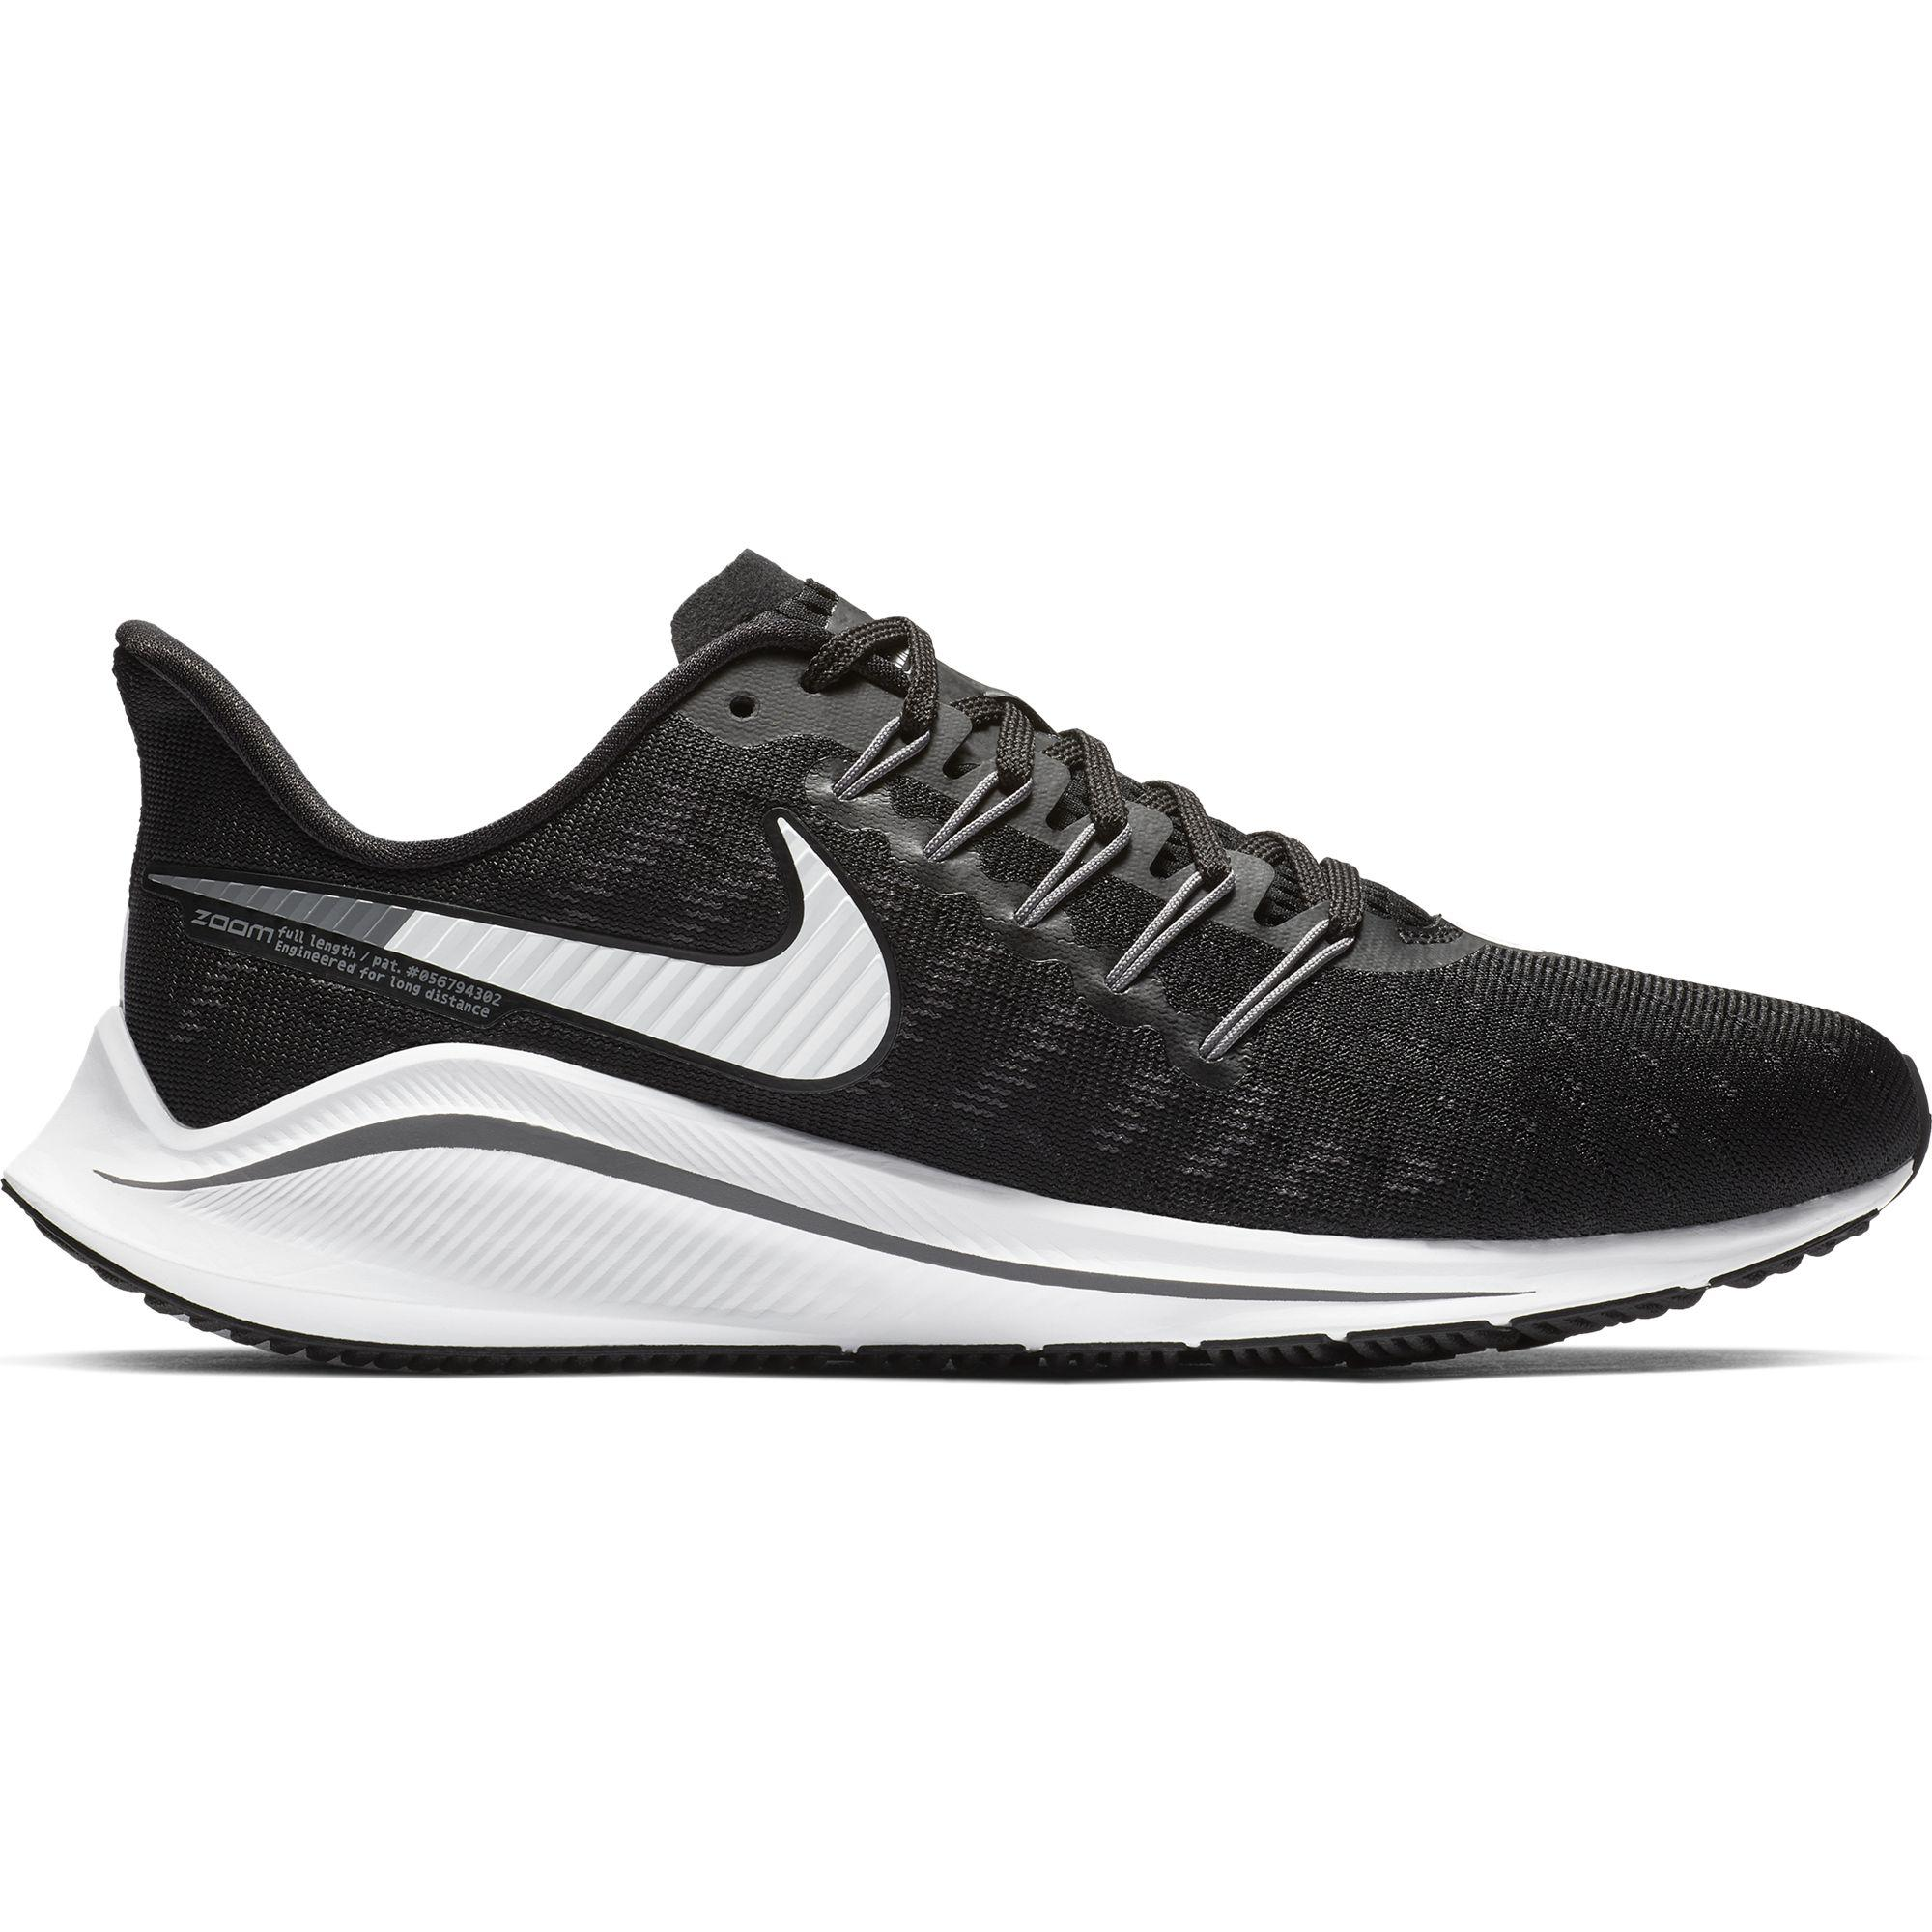 best sneakers c4707 e0e46 Nike Shoes Air Zoom Vomero 14 Woman